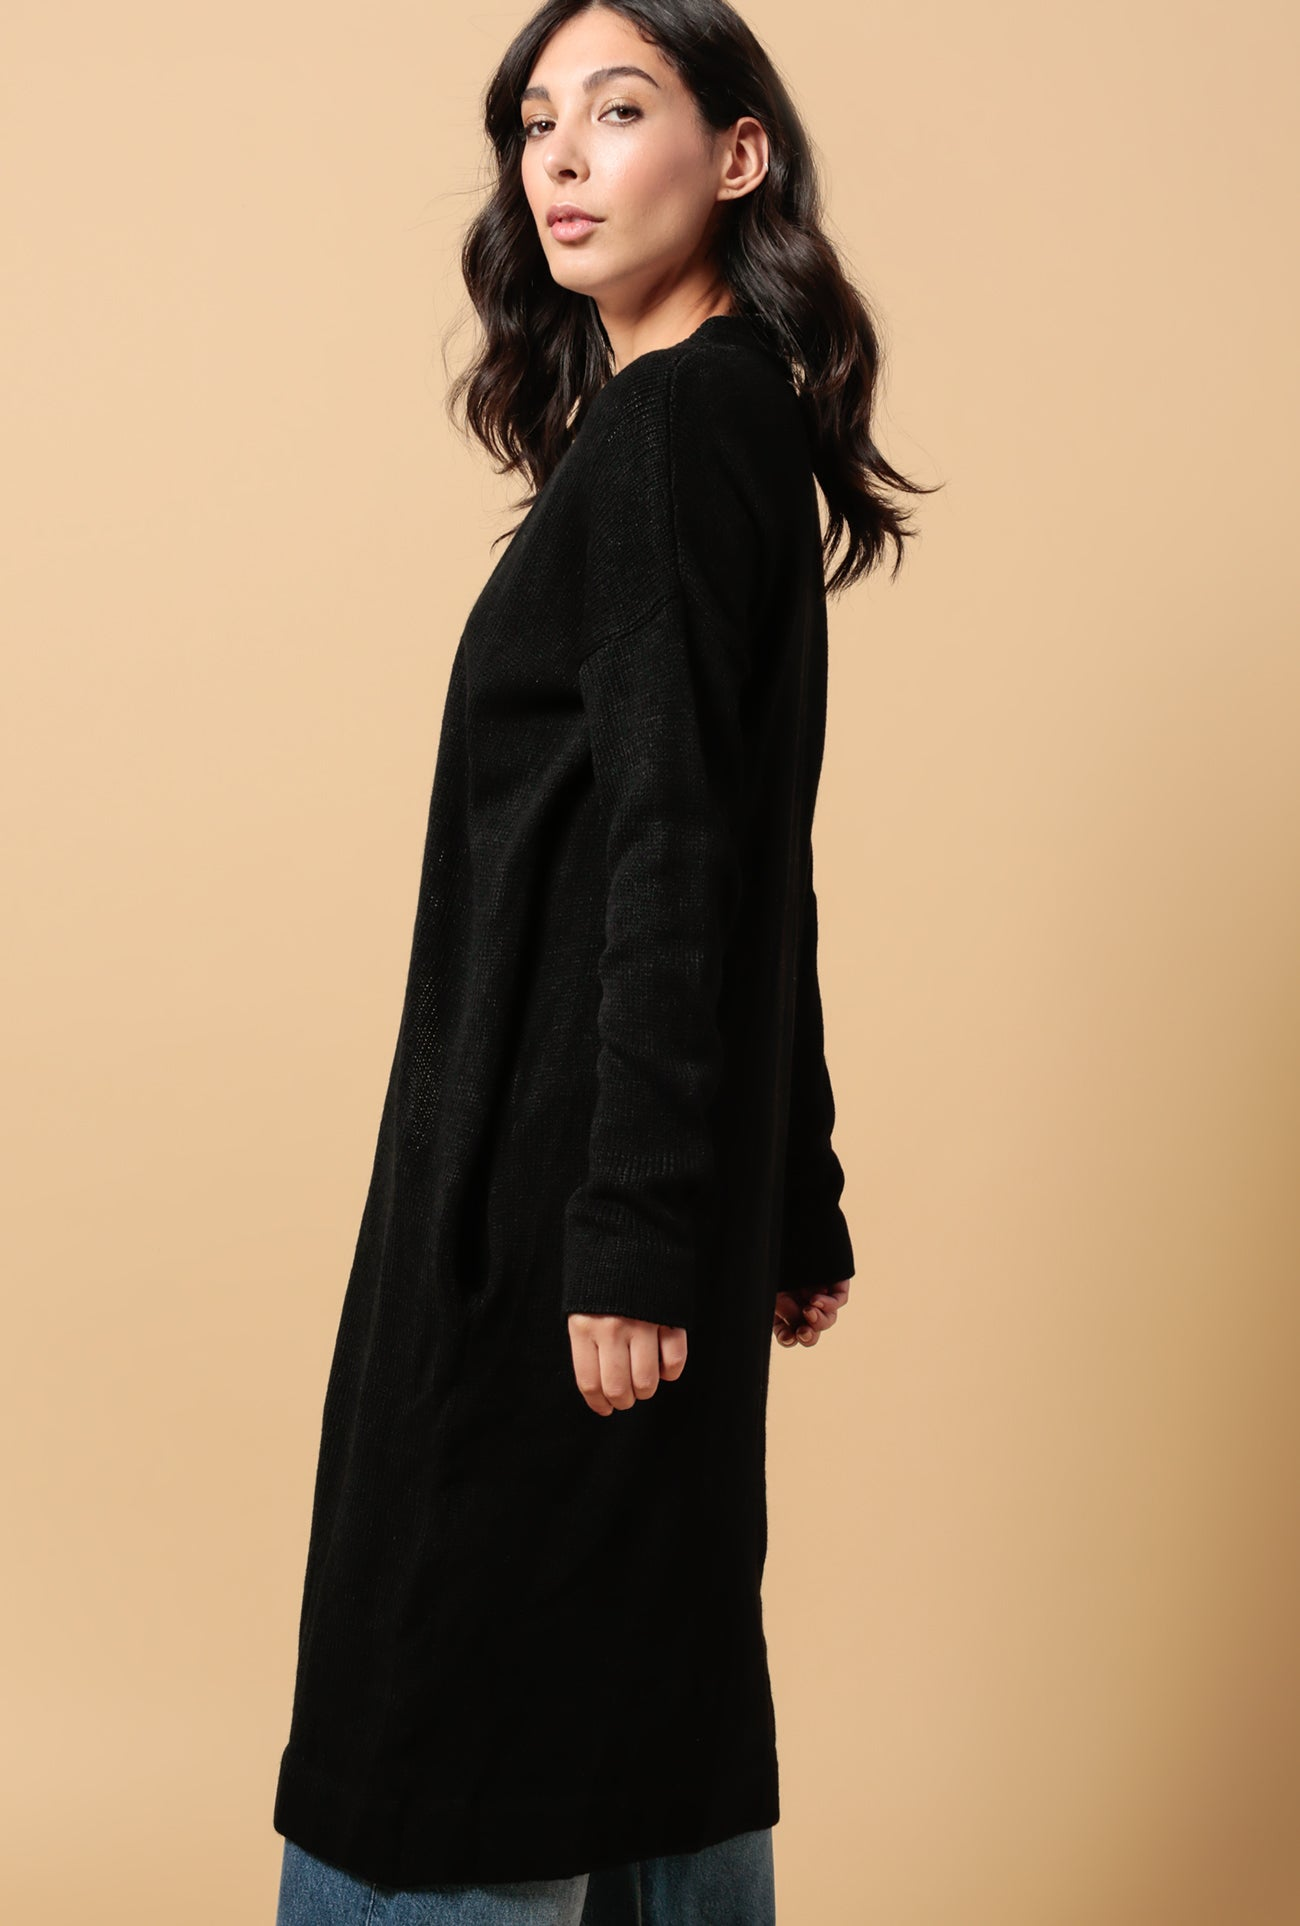 Cece Long Cardigan